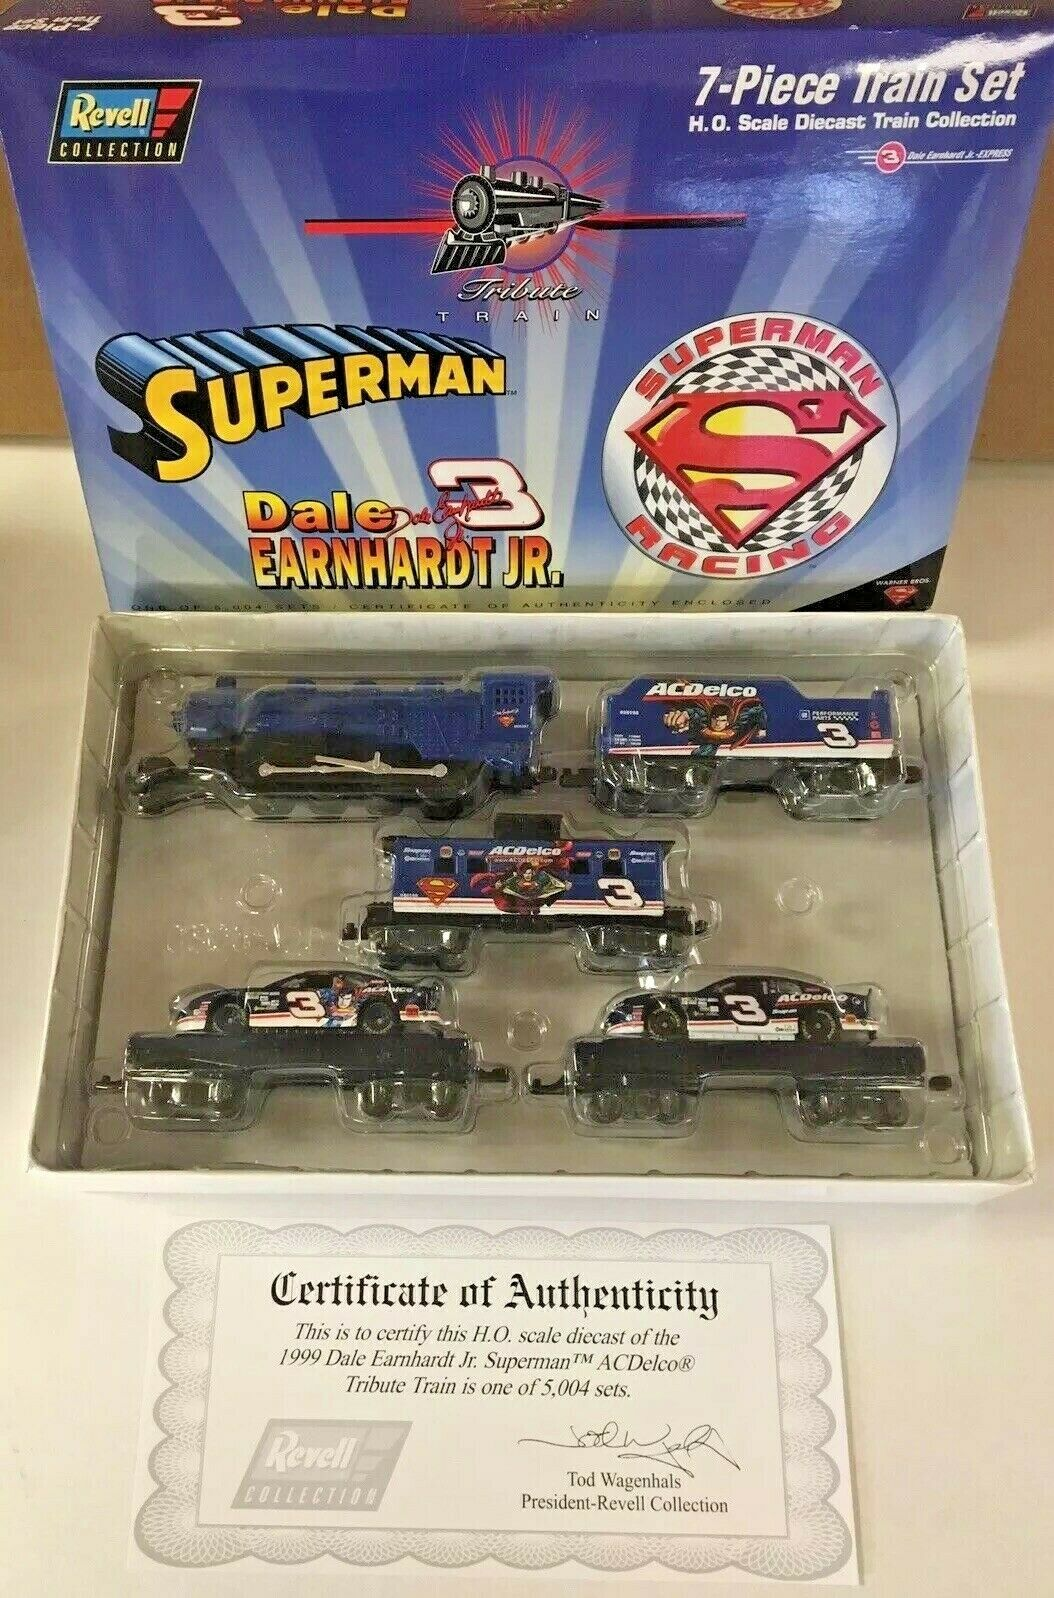 MIB Dale Earnhardt Jr. 7 Piece Superman Train Set Revell Collection QVC